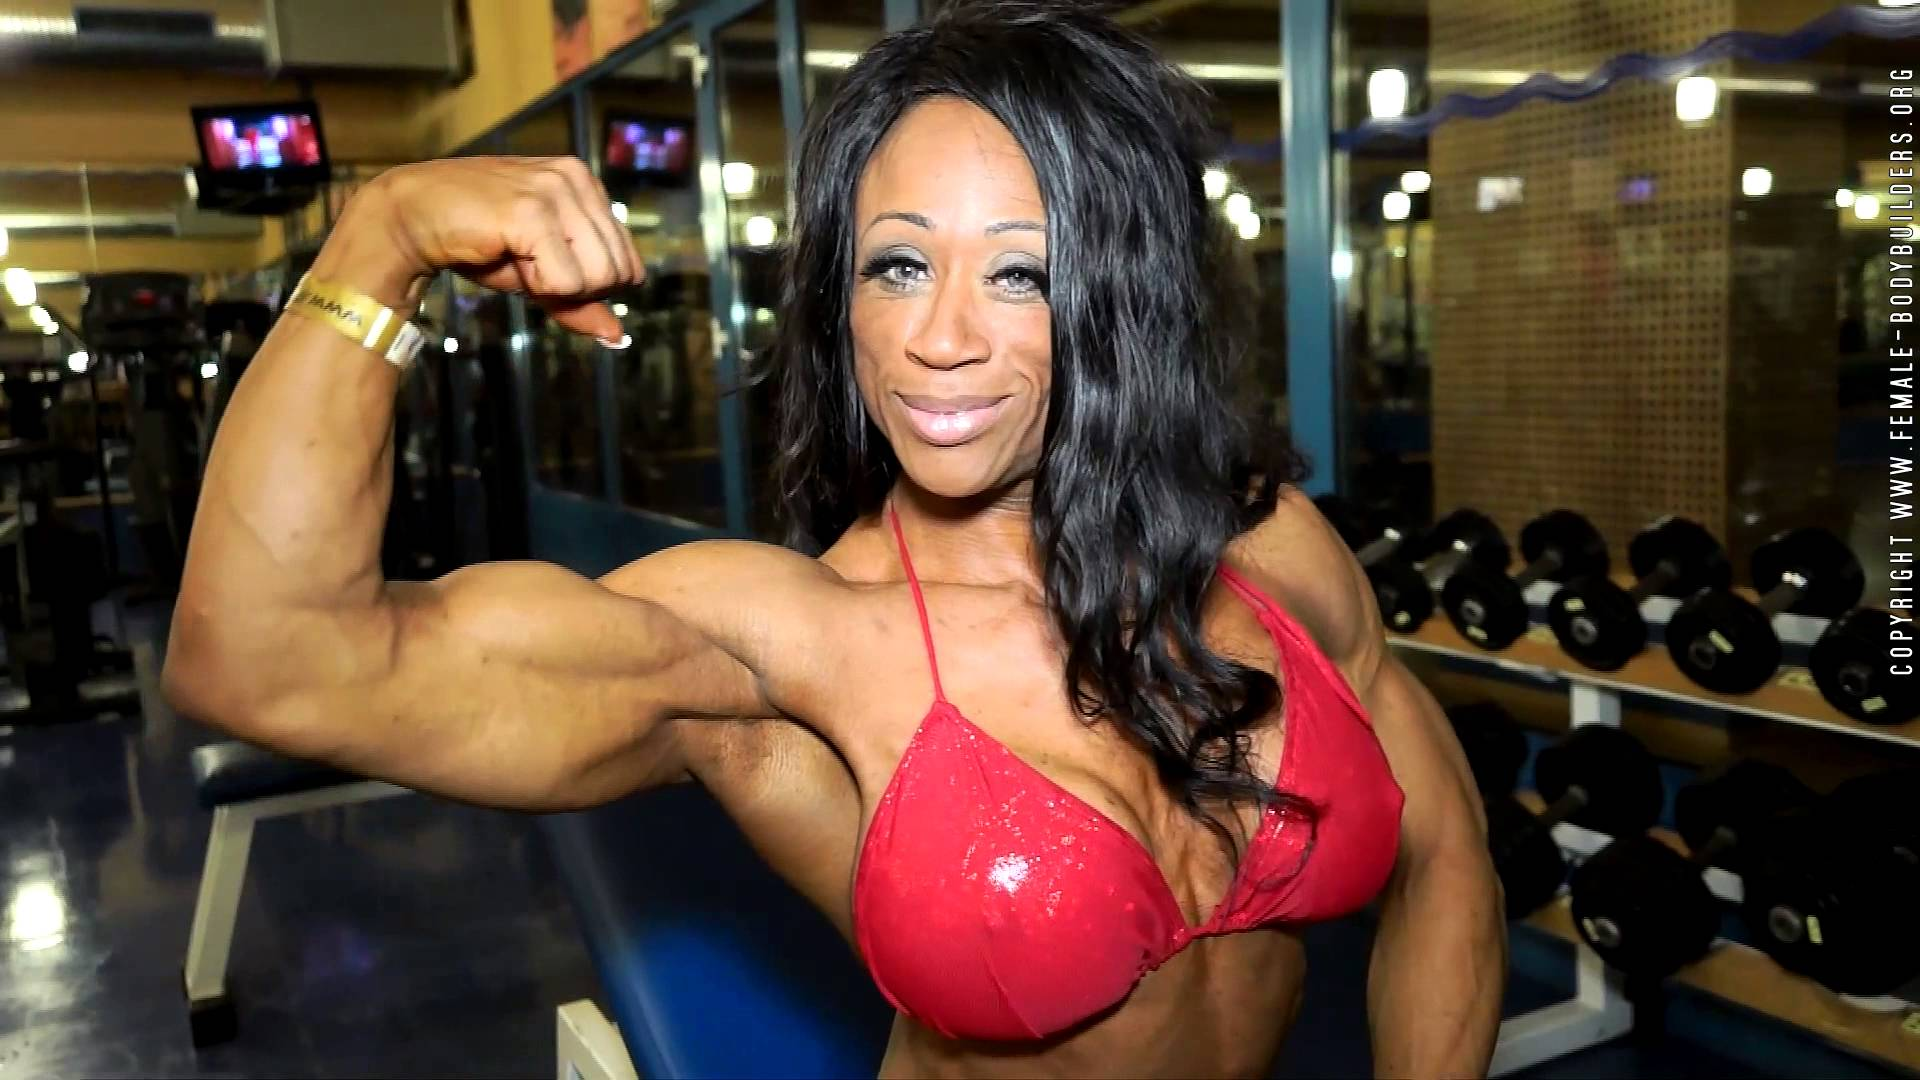 Zee Richards – Posing And Workout